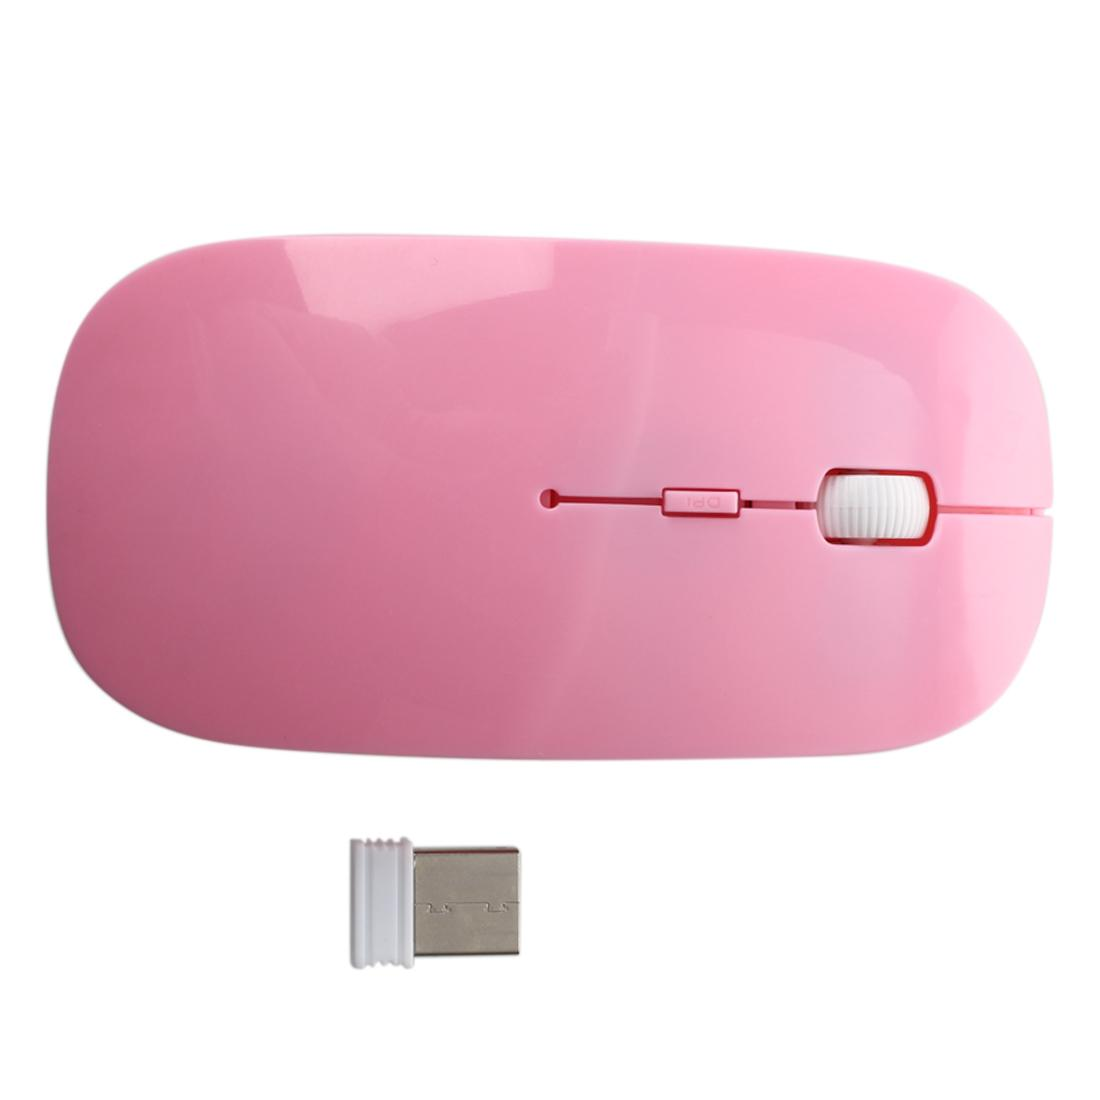 Usb Rf Wireless Laser Presenter For Laptop Black 10m Range 24 Ghz Mouse Dongle Pc Pink Online With 3168 Piece On Businesshomes